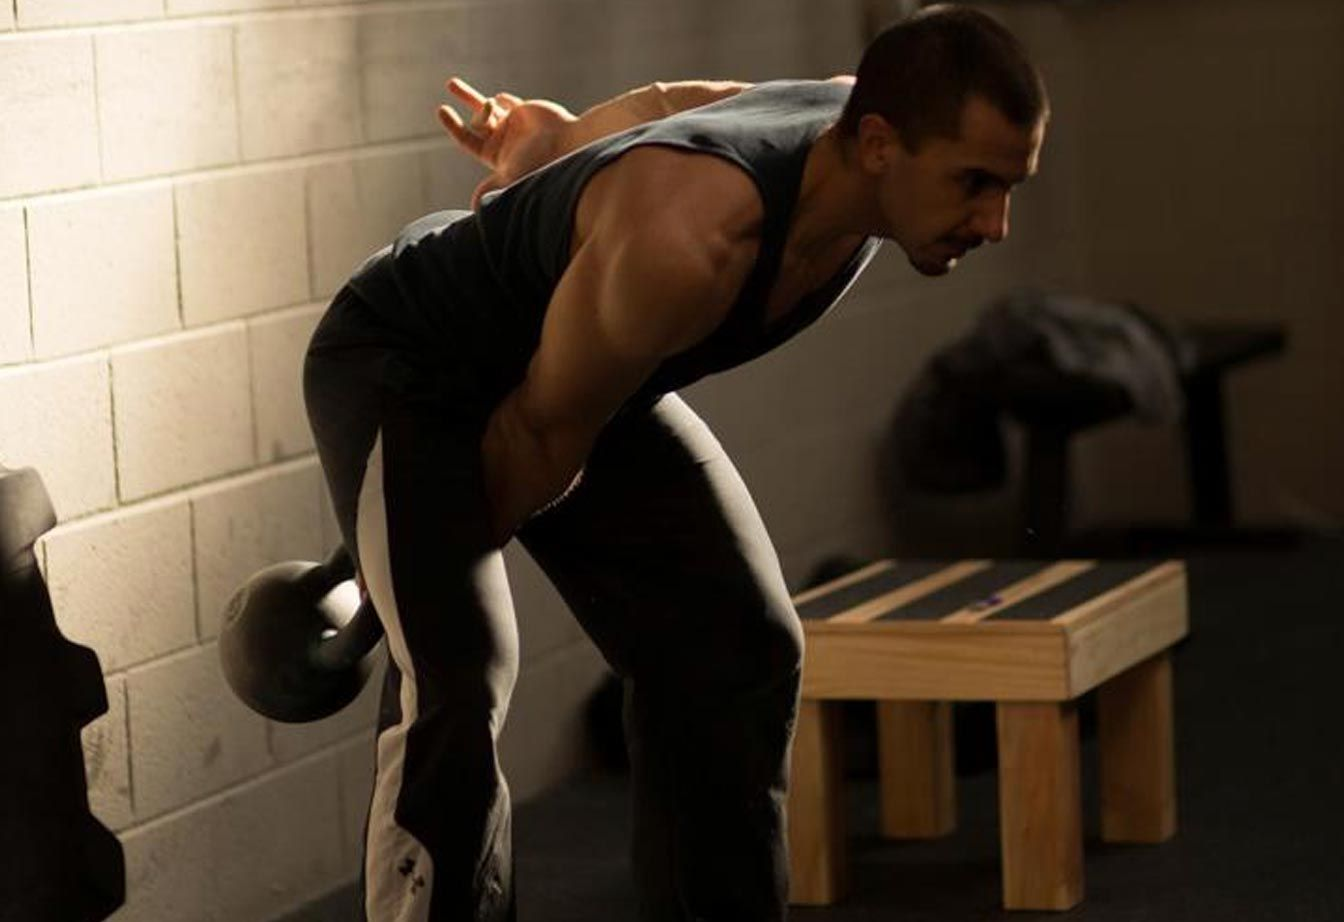 Kettlebell Bodybuilding The Difference Between Kettlebell Training And Bodybuilding